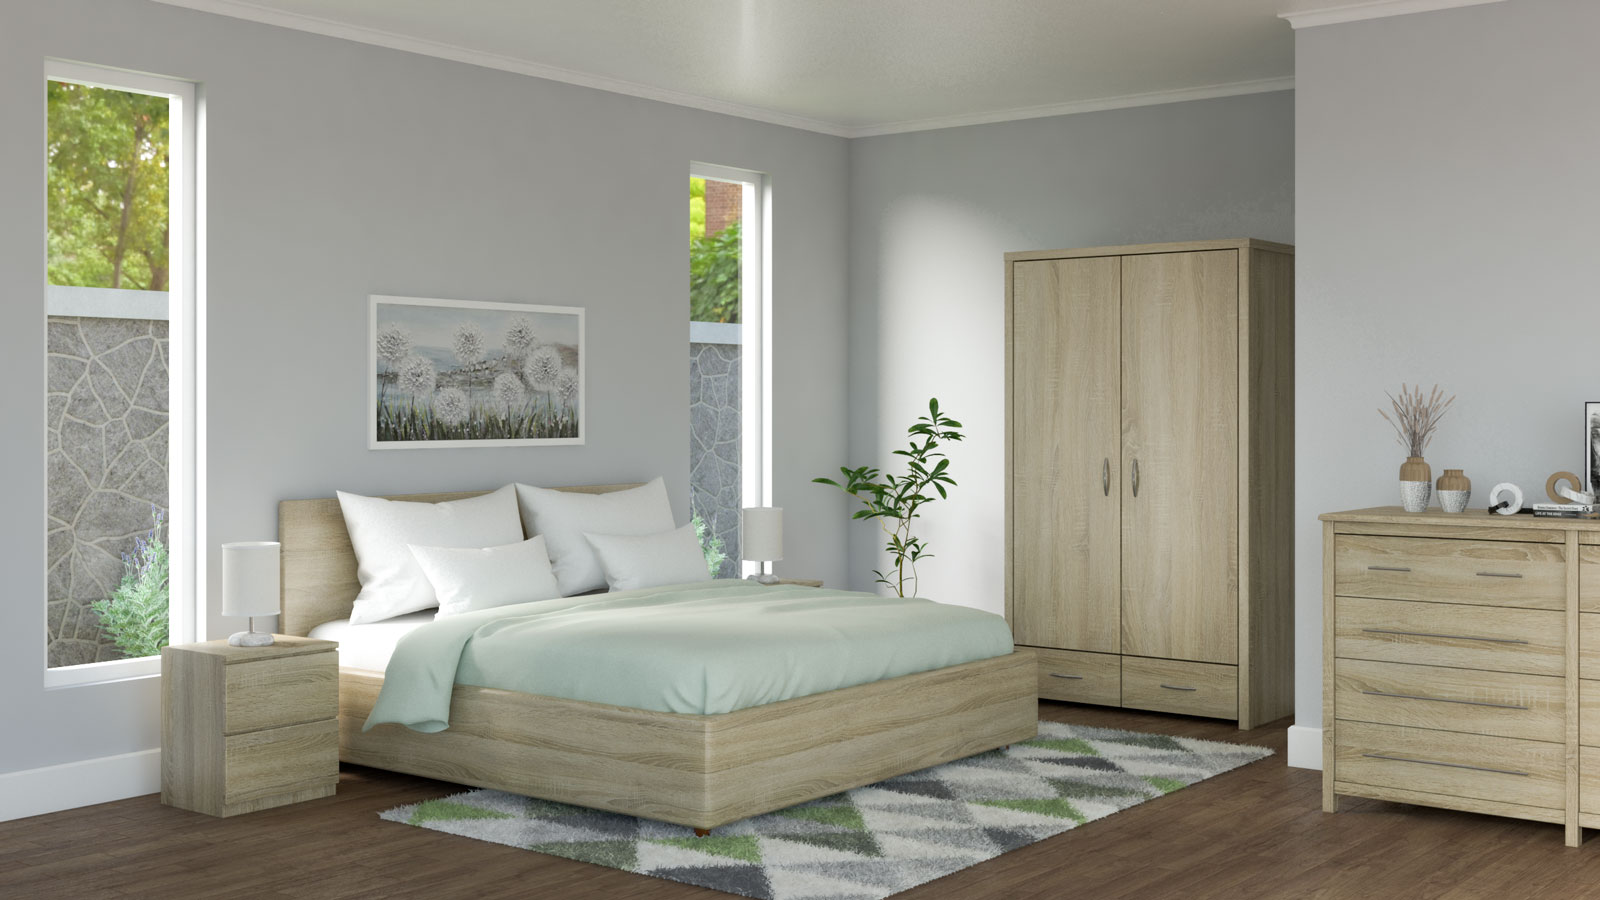 Bedroom with oak furnishings and sage bedding